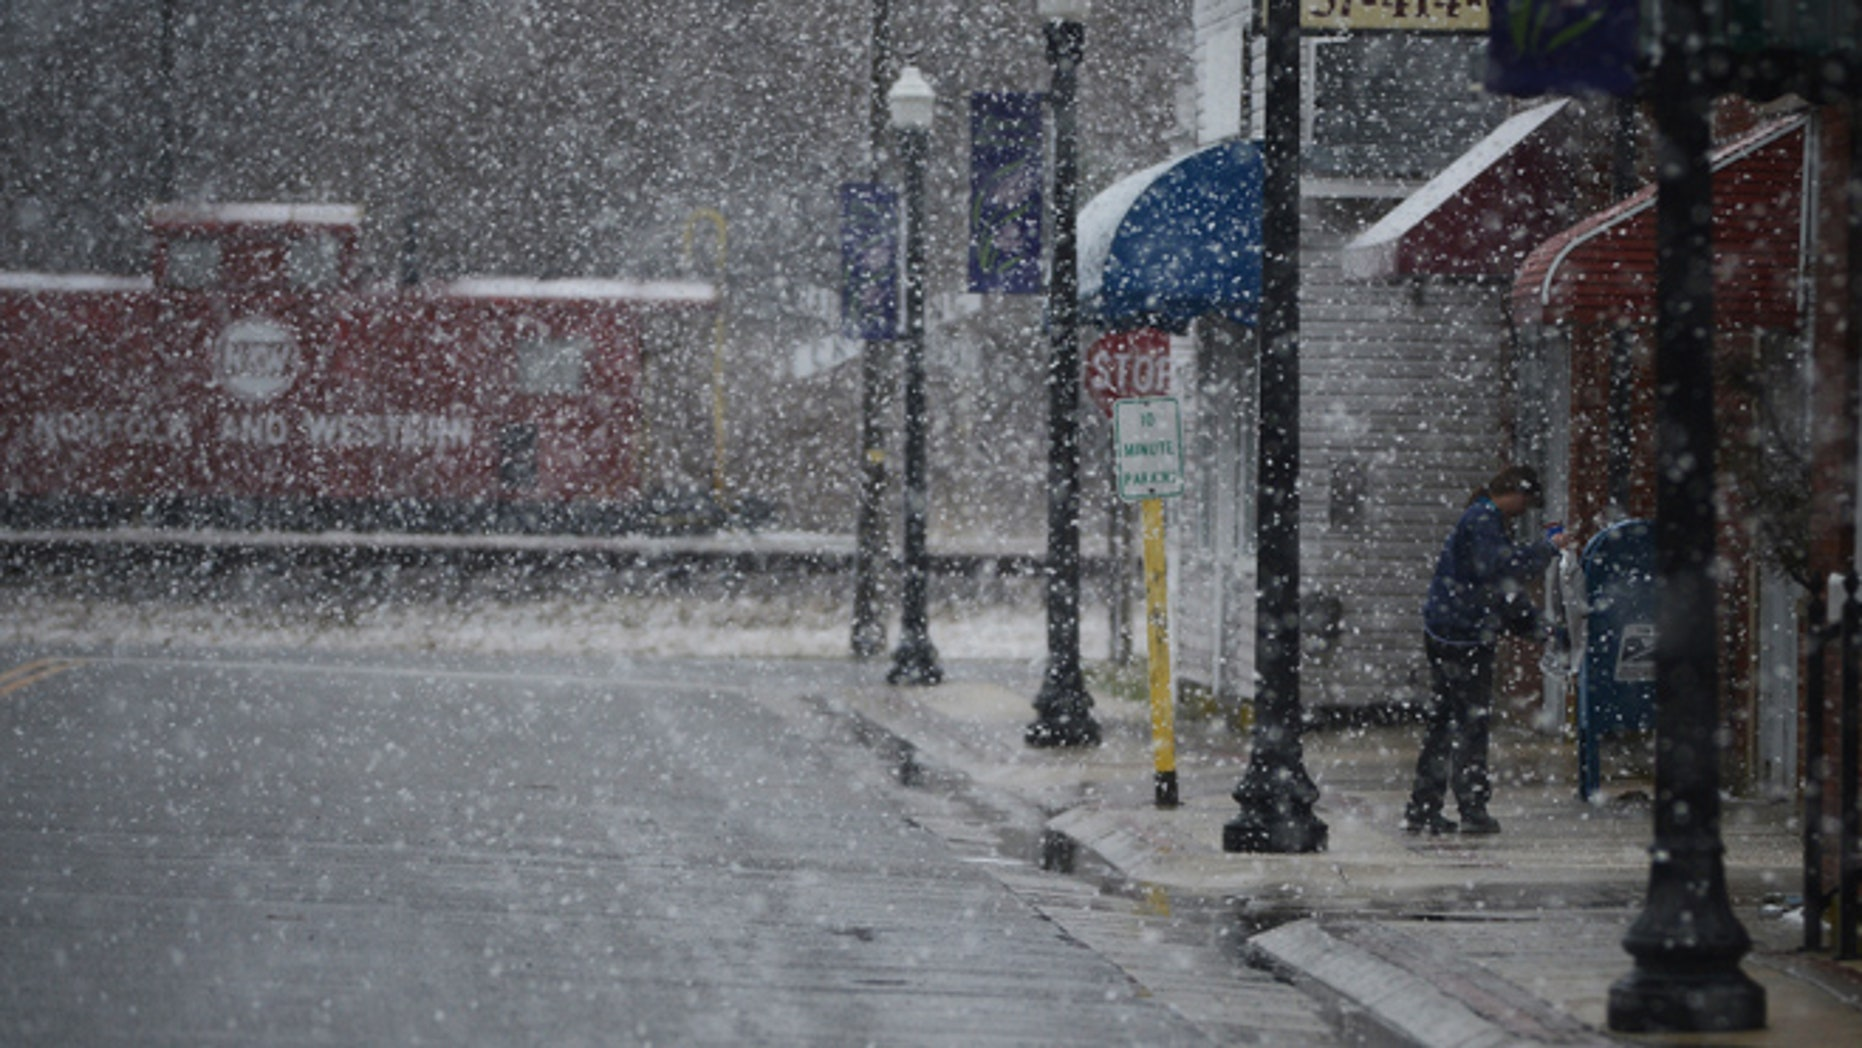 March 25, 2014: U.S. Postal employee Janeen Long salts and sands the sidewalk in front of the Exmore, Va. Post Office during a heavy snow fall.